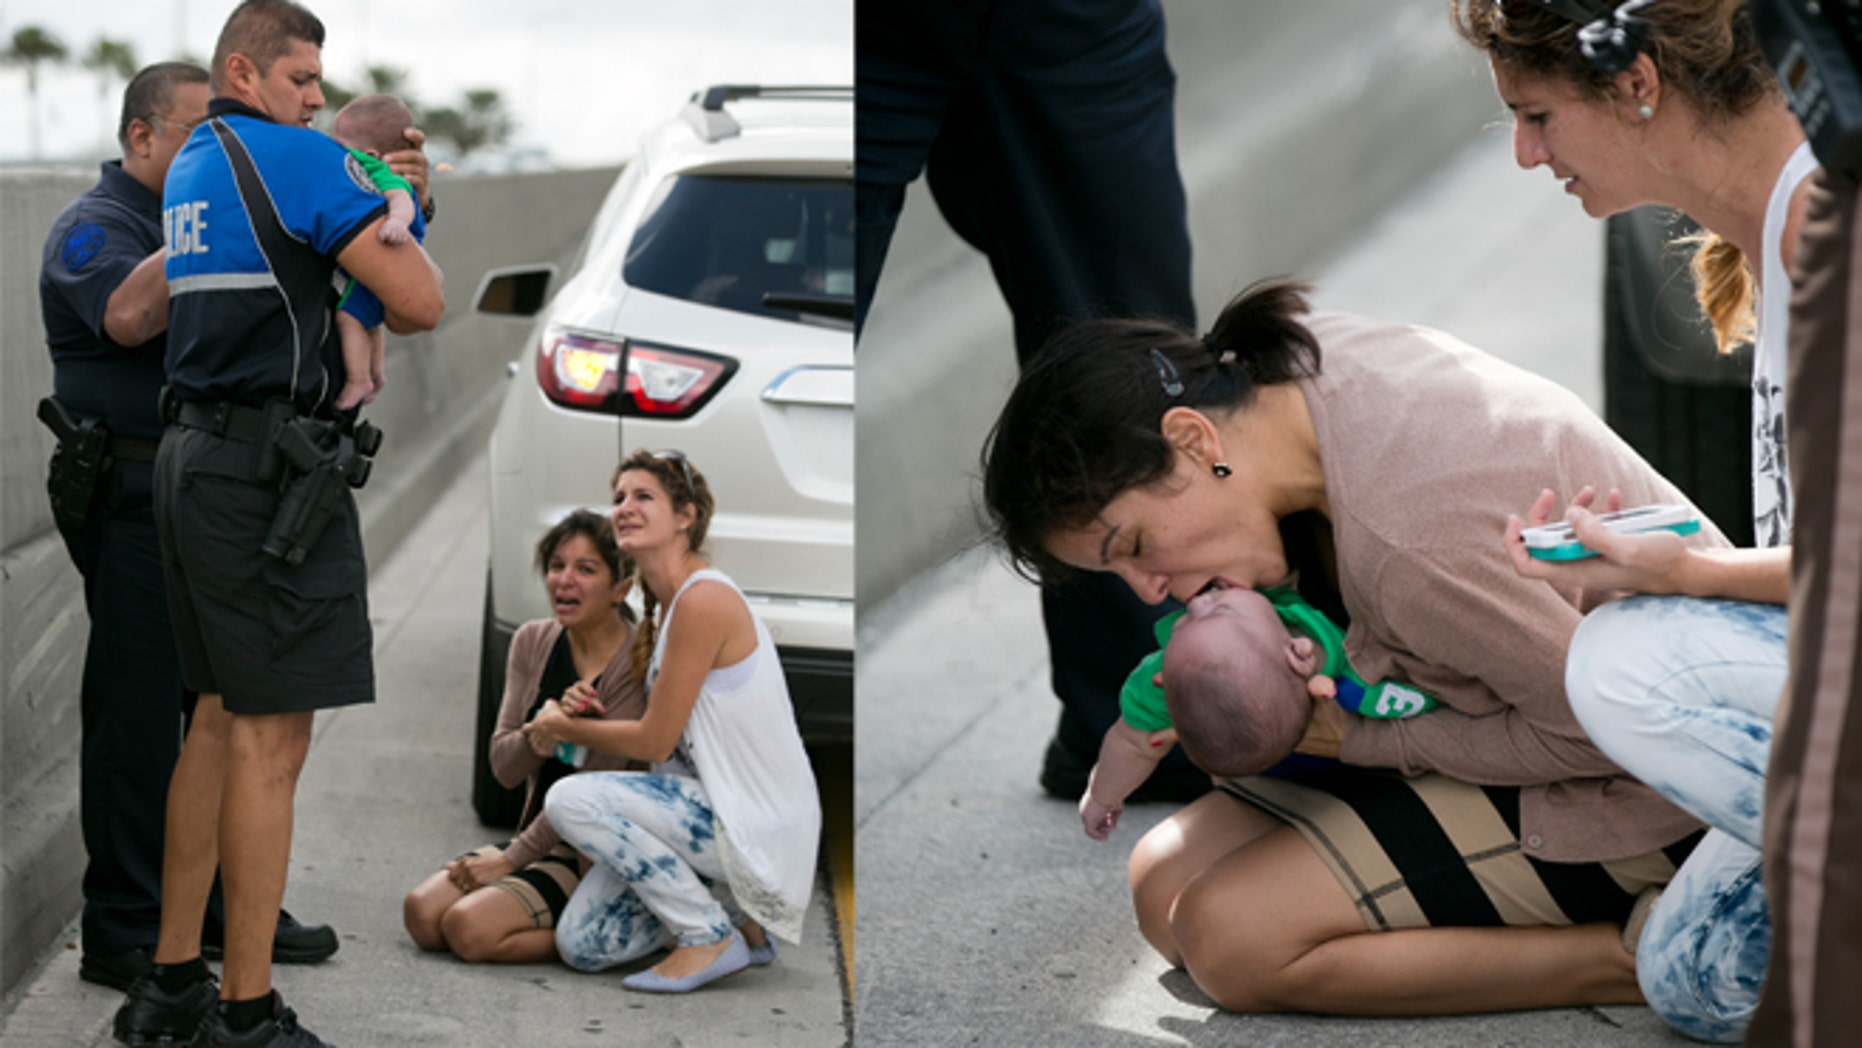 Pamela Rauseo, 37, performs CPR on her nephew, five-month-old Sebastian de la Cruz, after pulling her SUV over on the side of the road along the west bound lane on Florida state road 836 just east of 57th Avenue around 2:30pm on Thursday, Feb. 20, 2014.  At right is Lucila Godoy who stopped her car to assist in the rescue. The baby was rushed to Jackson Memorial Hospital, where he is reportedly doing ok. (AP Photo/The Miami Herald, Al Diaz)